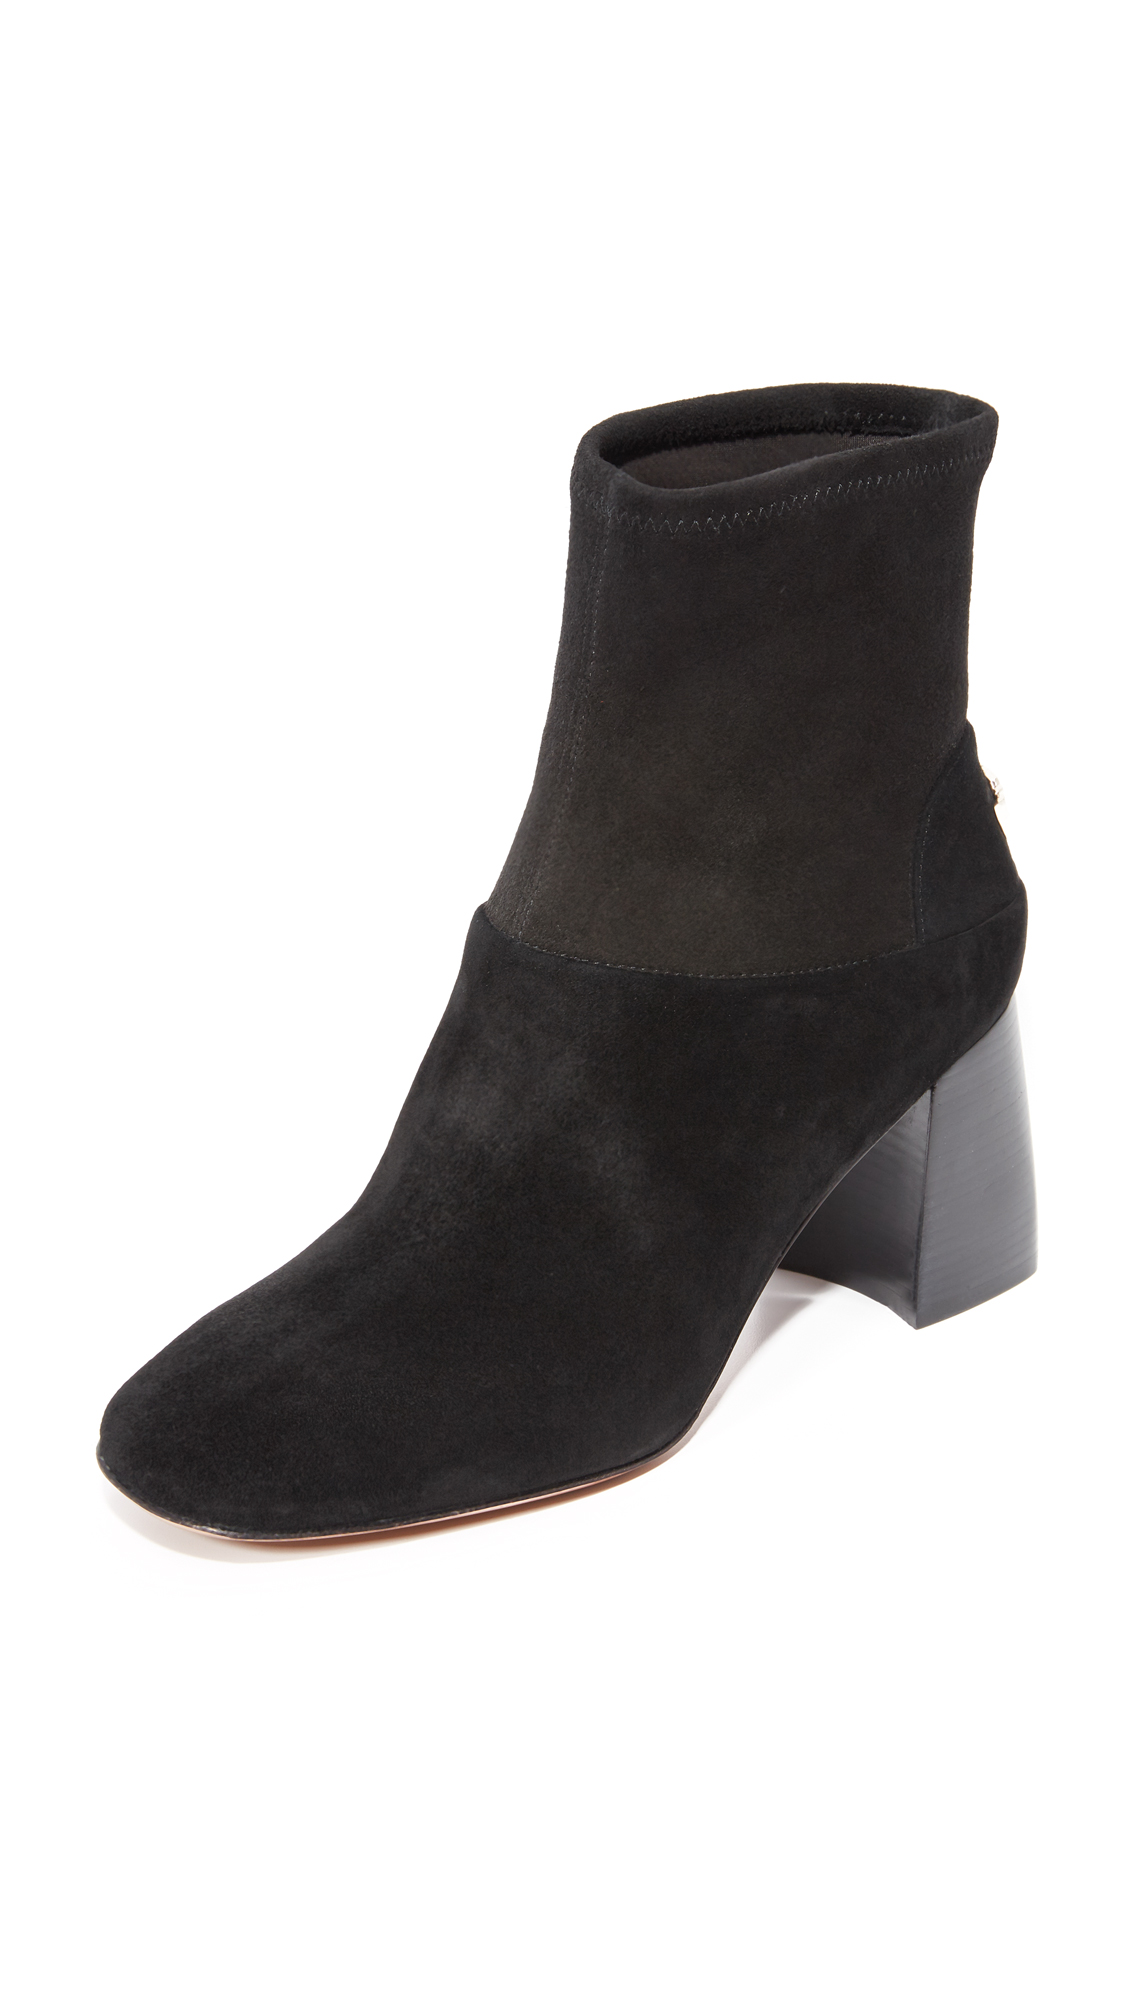 Tory Burch Sidney Booties - Black